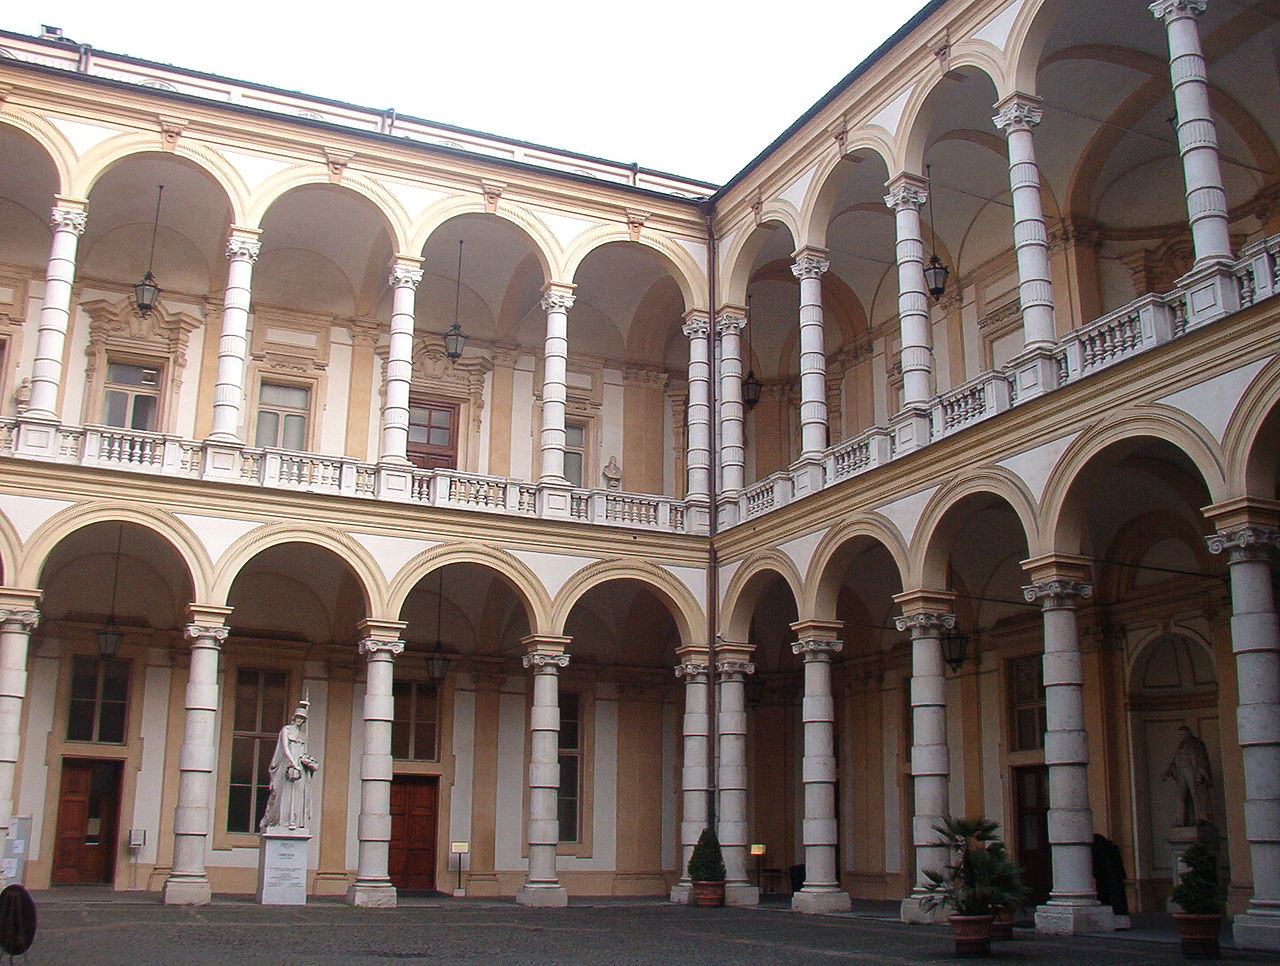 The Rectorate courtyard